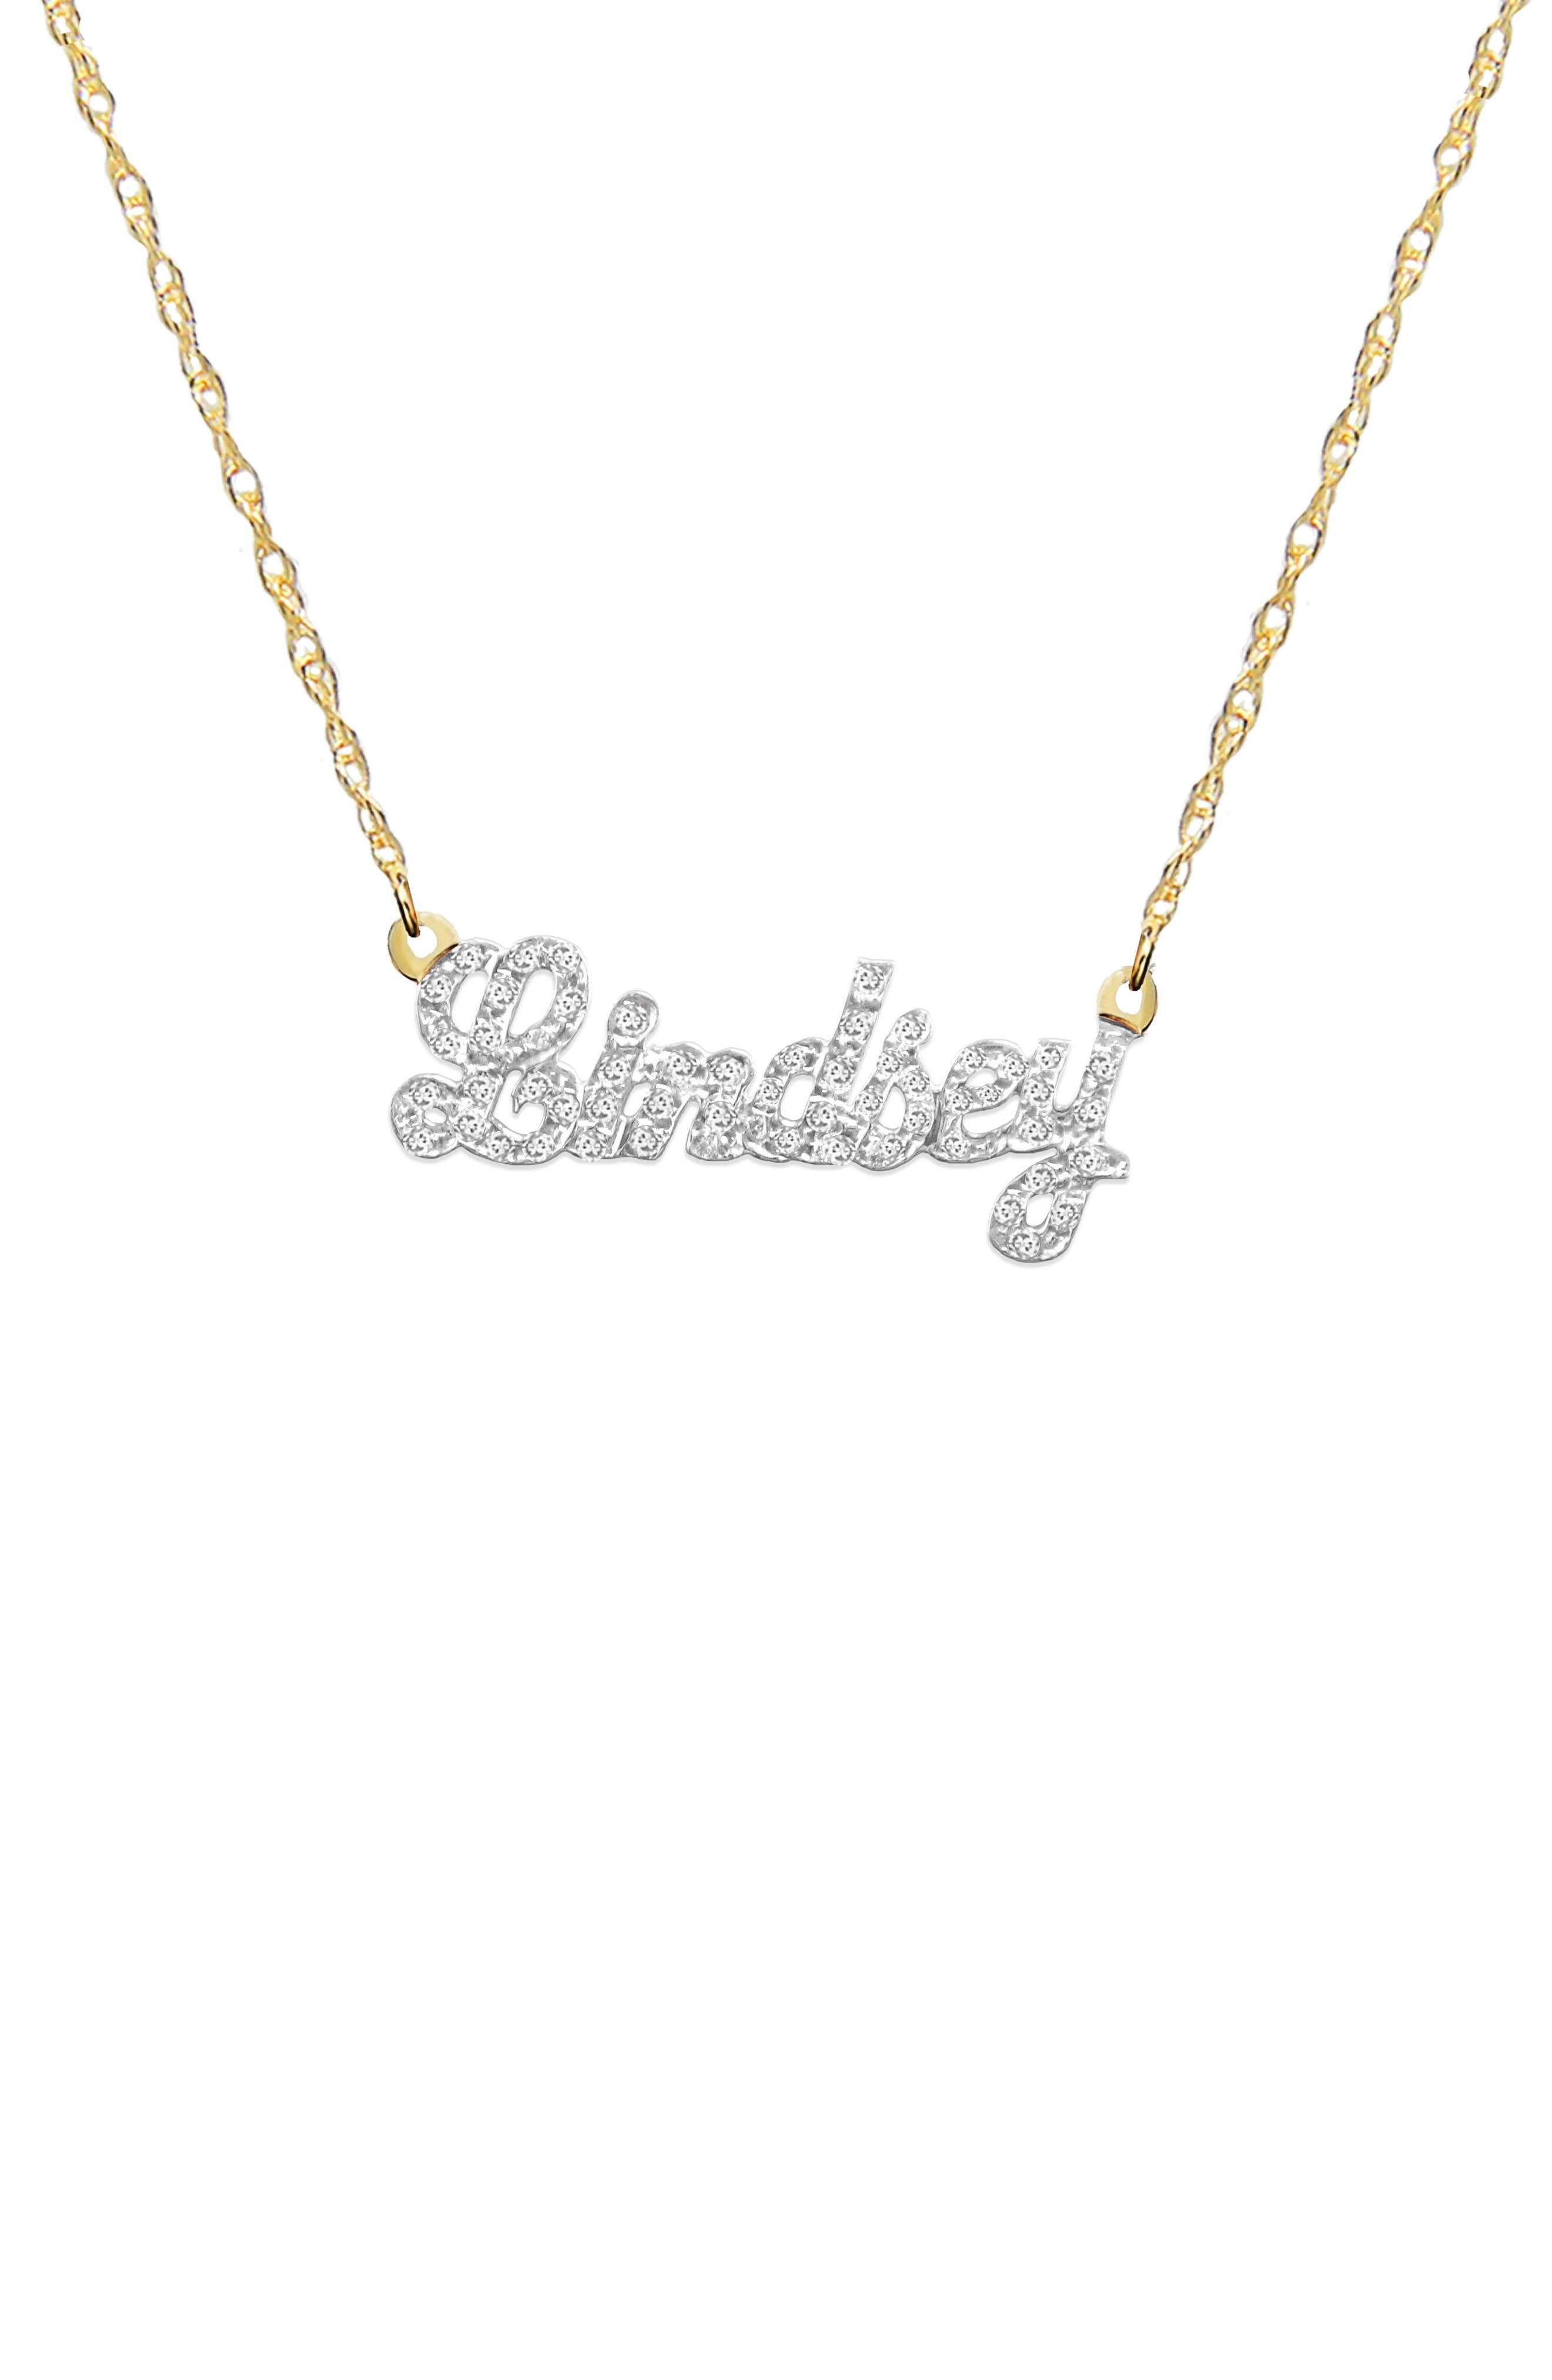 Jane Basch Personalized Nameplate Diamond Pendant Necklace,                             Main thumbnail 1, color,                             14K YELLOW GOLD